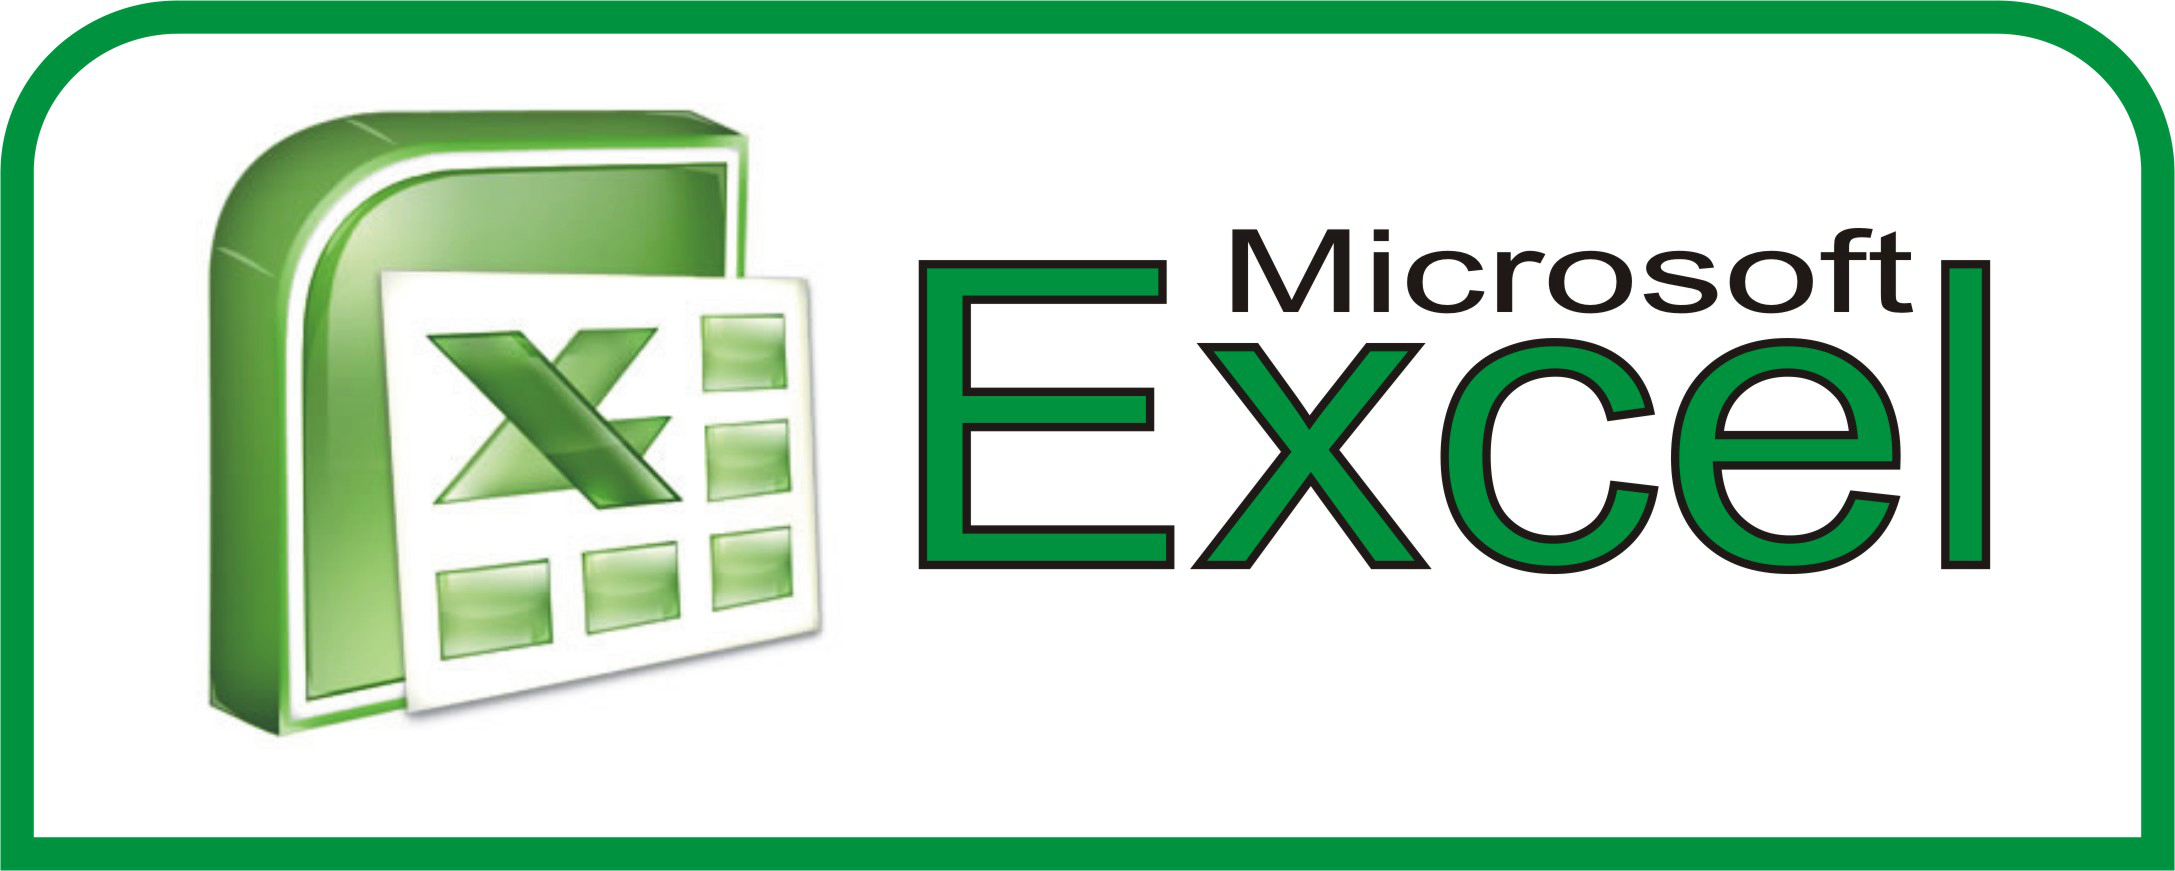 Ediblewildsus  Ravishing  Excel Shortcuts You Probably Didnt Know About  Techdissected With Fascinating Excel Convert To Pdf Besides Resource Planning Template Excel Furthermore Excel  Download Free With Attractive Correlation Chart Excel Also Excel  Drop Down List Multiple Selection In Addition How To Compare In Excel And Excel Diff Tool As Well As Excel  Datedif Additionally Excel Finance Template From Techdissectedcom With Ediblewildsus  Fascinating  Excel Shortcuts You Probably Didnt Know About  Techdissected With Attractive Excel Convert To Pdf Besides Resource Planning Template Excel Furthermore Excel  Download Free And Ravishing Correlation Chart Excel Also Excel  Drop Down List Multiple Selection In Addition How To Compare In Excel From Techdissectedcom